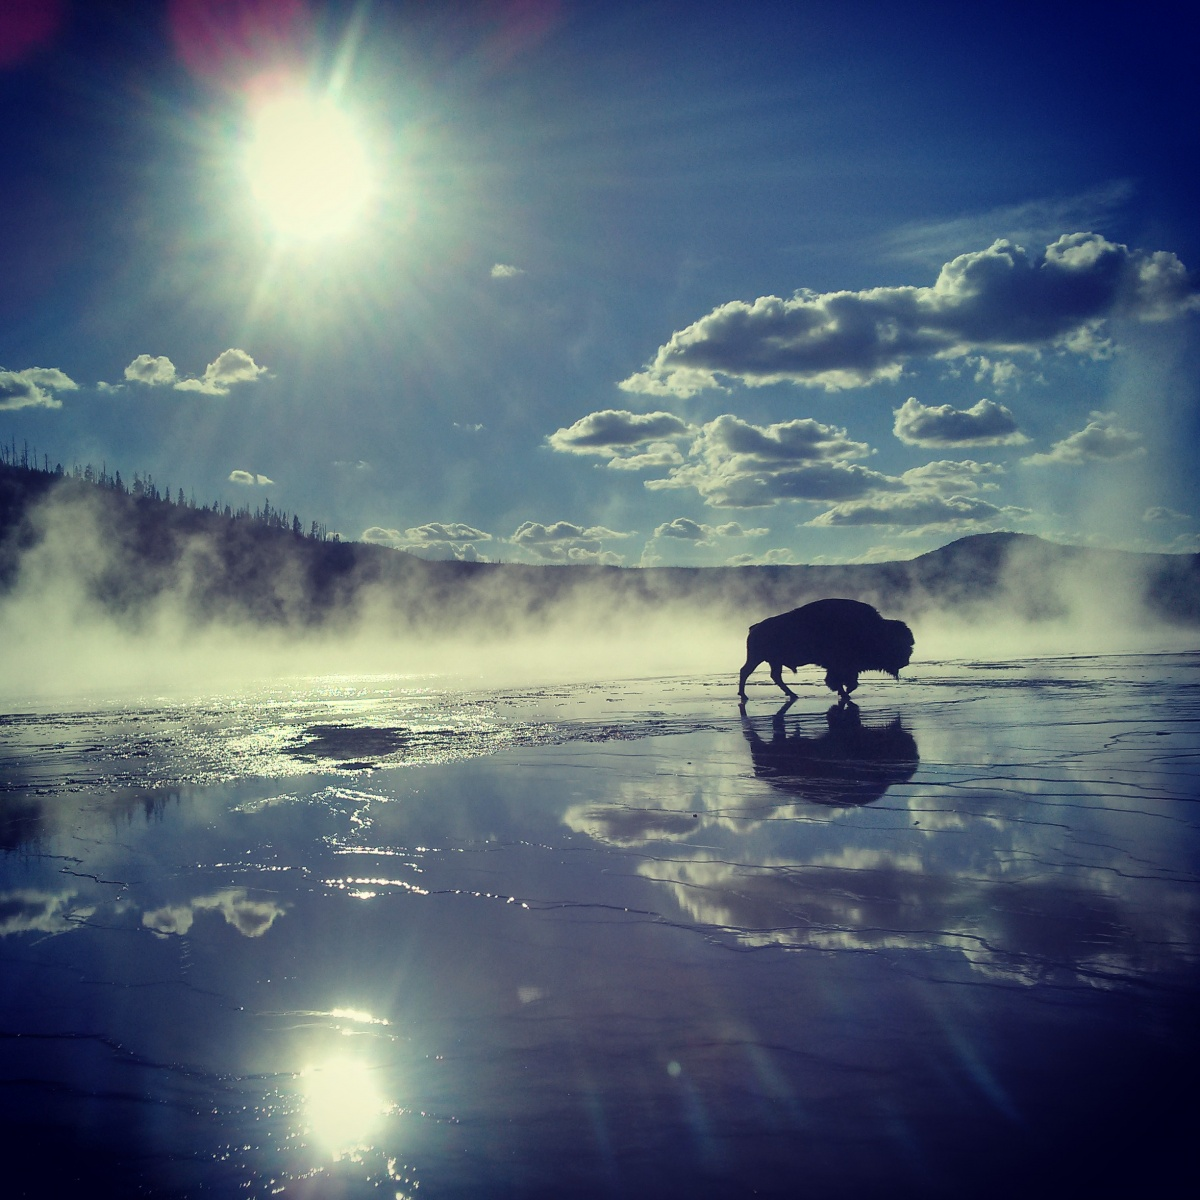 A bison walking by a steaming hot spring in bright sunlight.